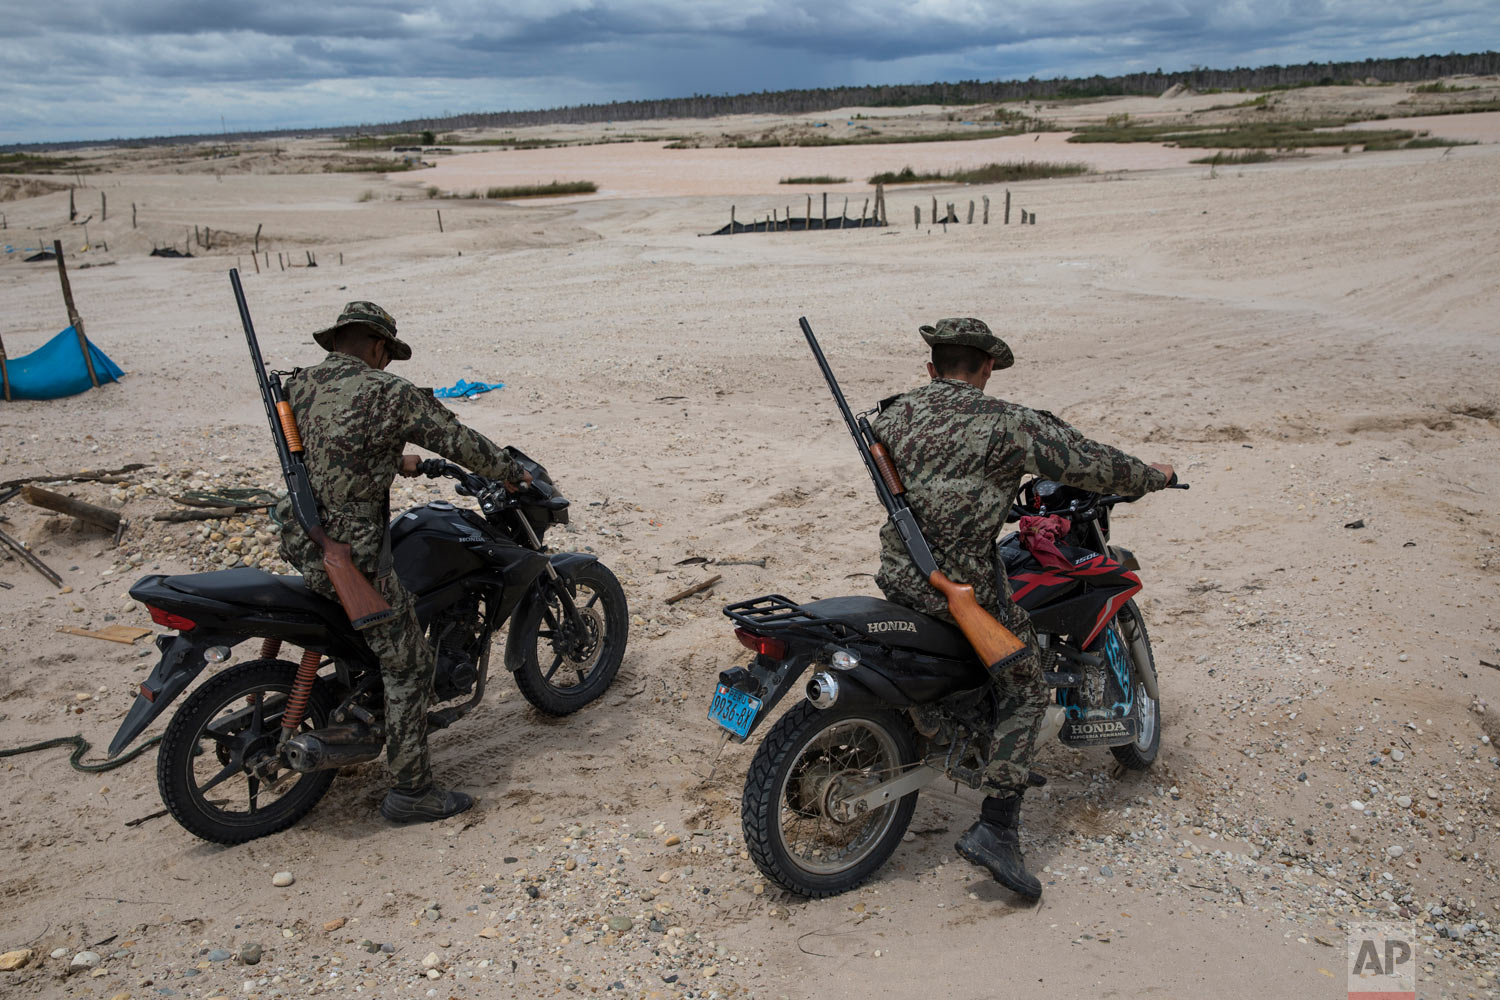 "In this March 27, 2019 photo, ""Operation Mercury"" soldiers patrol on motorbikes an area once used by illegal miners, in Peru's Tambopata province. Peruvian police and soldiers search for and destroy equipment used by illegal gold miners in a part of the Amazon rainforest where the mining transformed dense foliage into a desert pocked with dead trees and toxic pools. (AP Photo/Rodrigo Abd)"